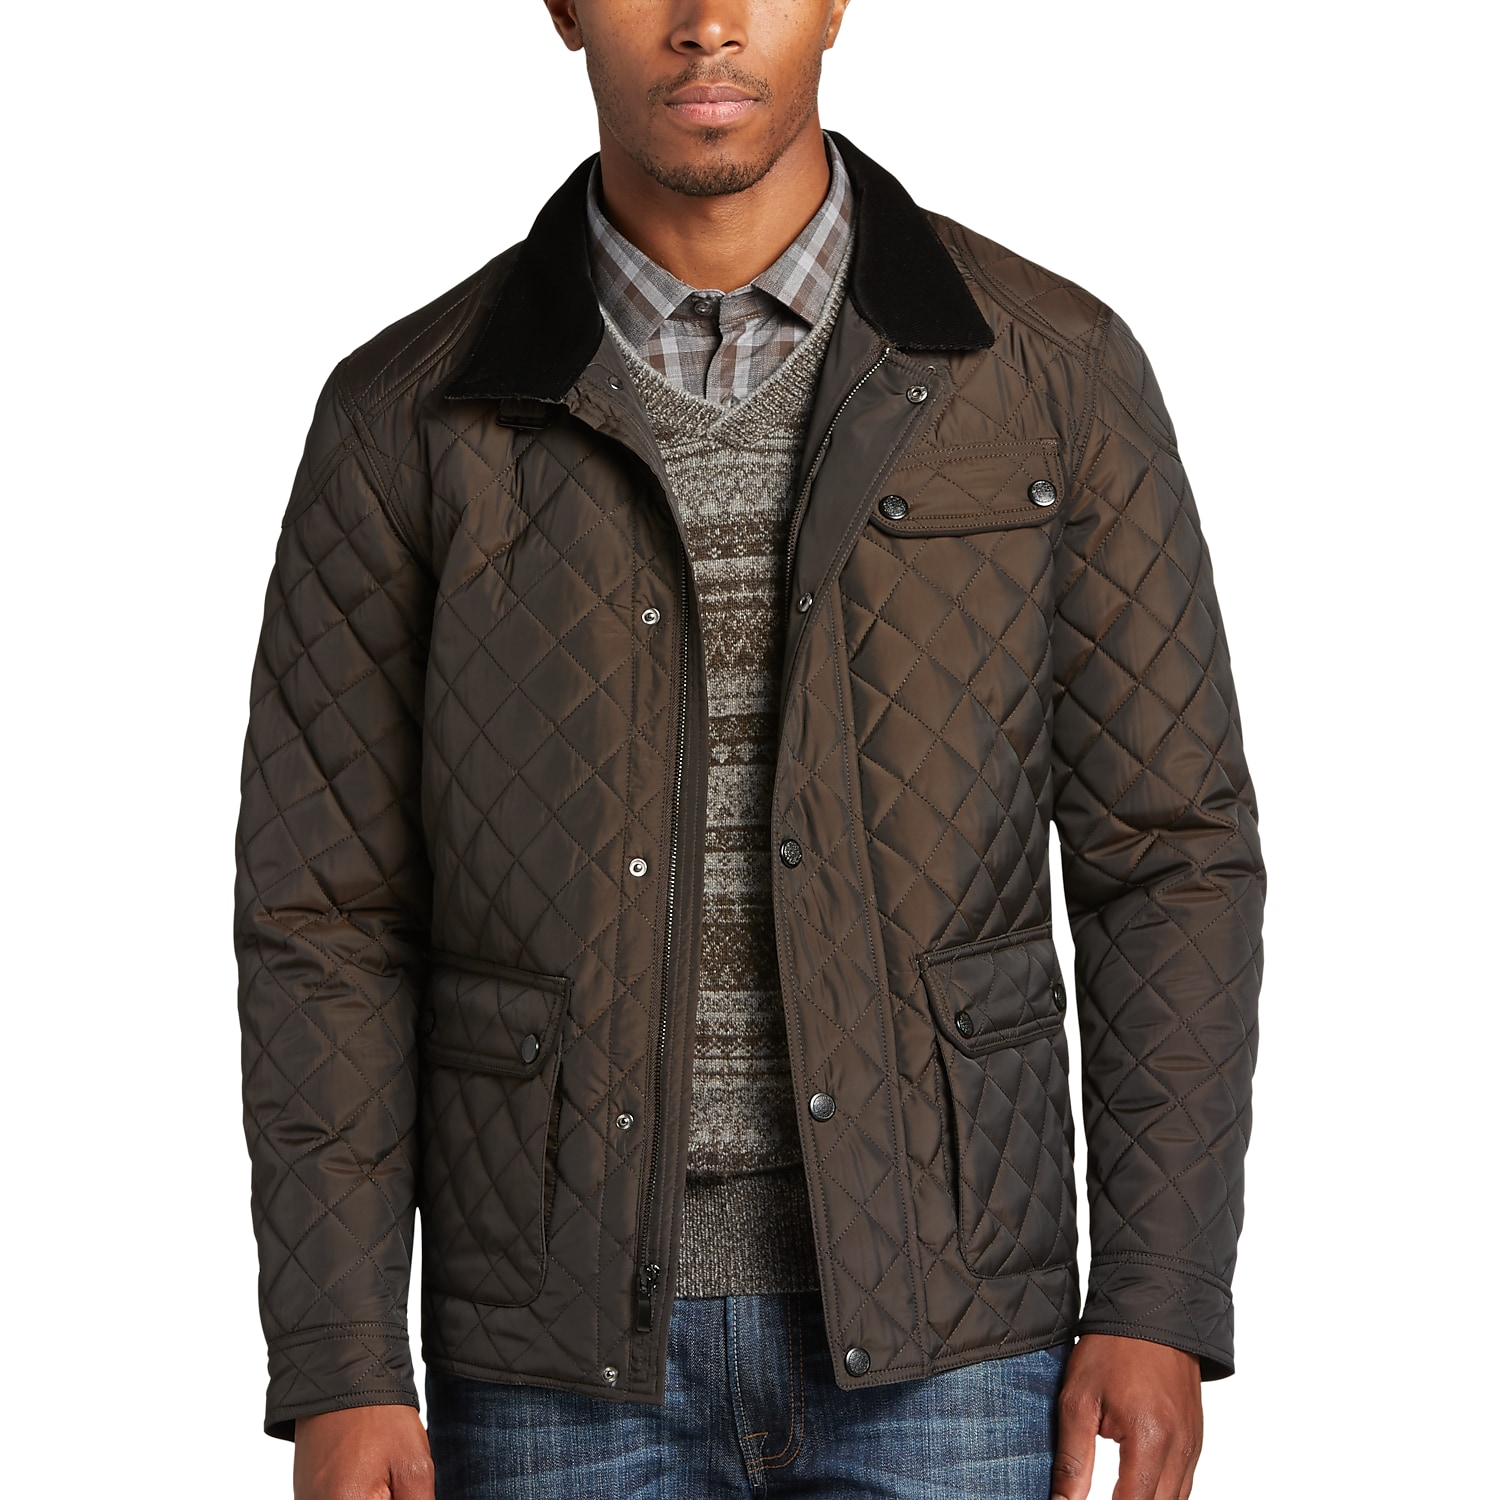 Pronto Uomo Brown Modern Fit Quilted Jacket - Men's Casual Jackets ...